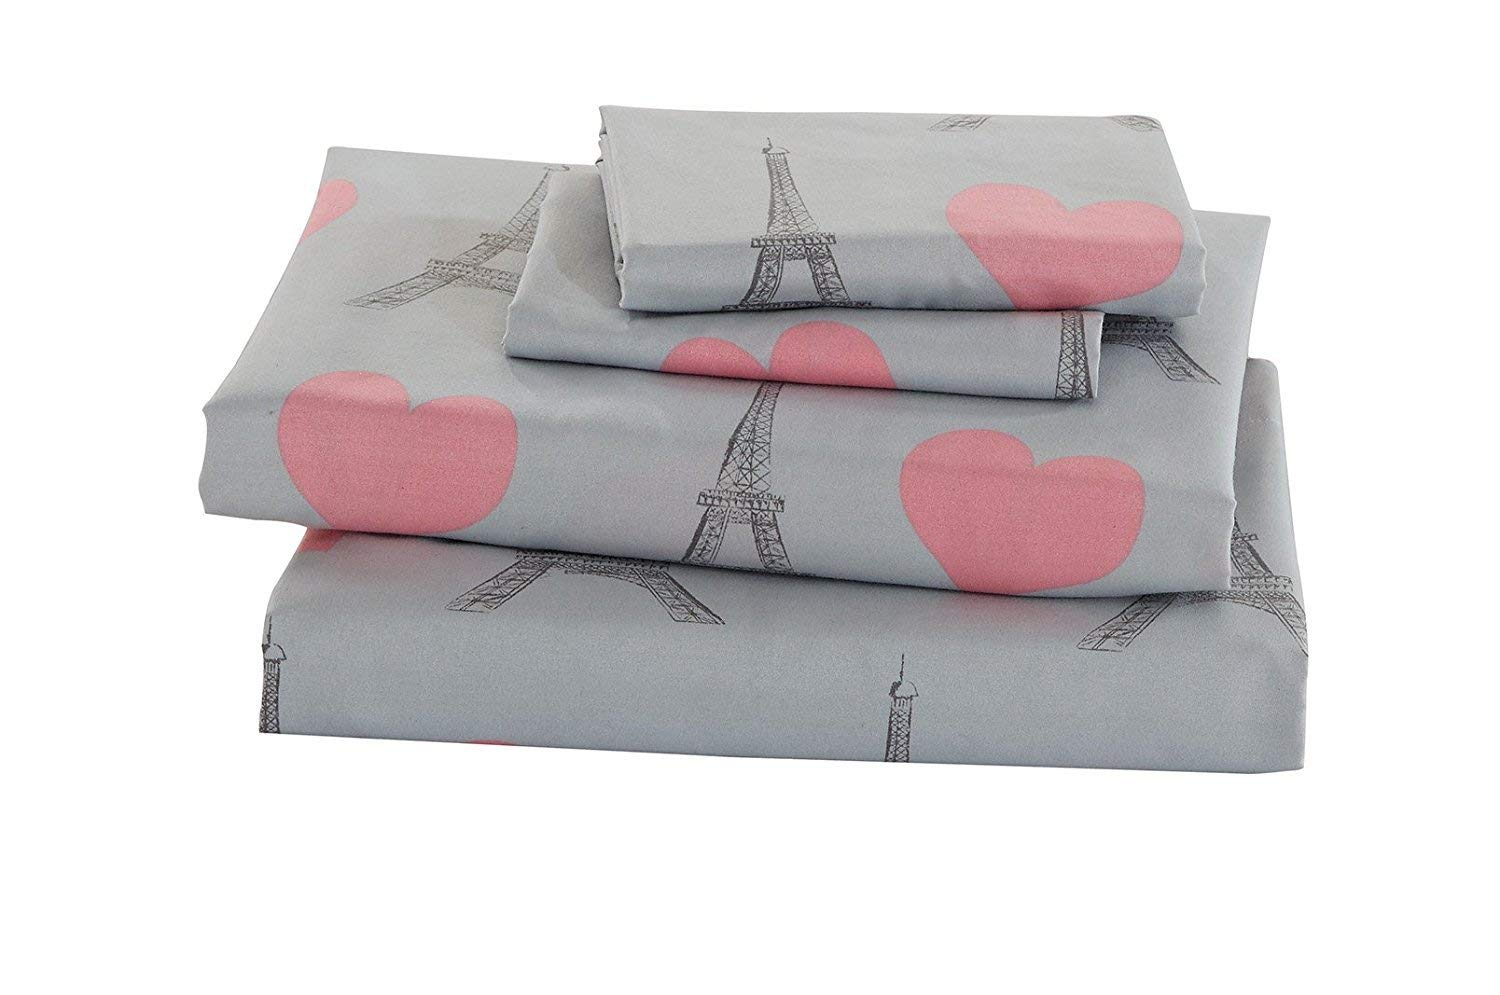 Queen Elegant Home Multicolors Pink Grey Paris Eiffel Tower Bonjour Design with Hearts Fun Printed Sheet Set with Pillowcases Flat Fitted Sheet for Girls//Kids//Teens # Paris